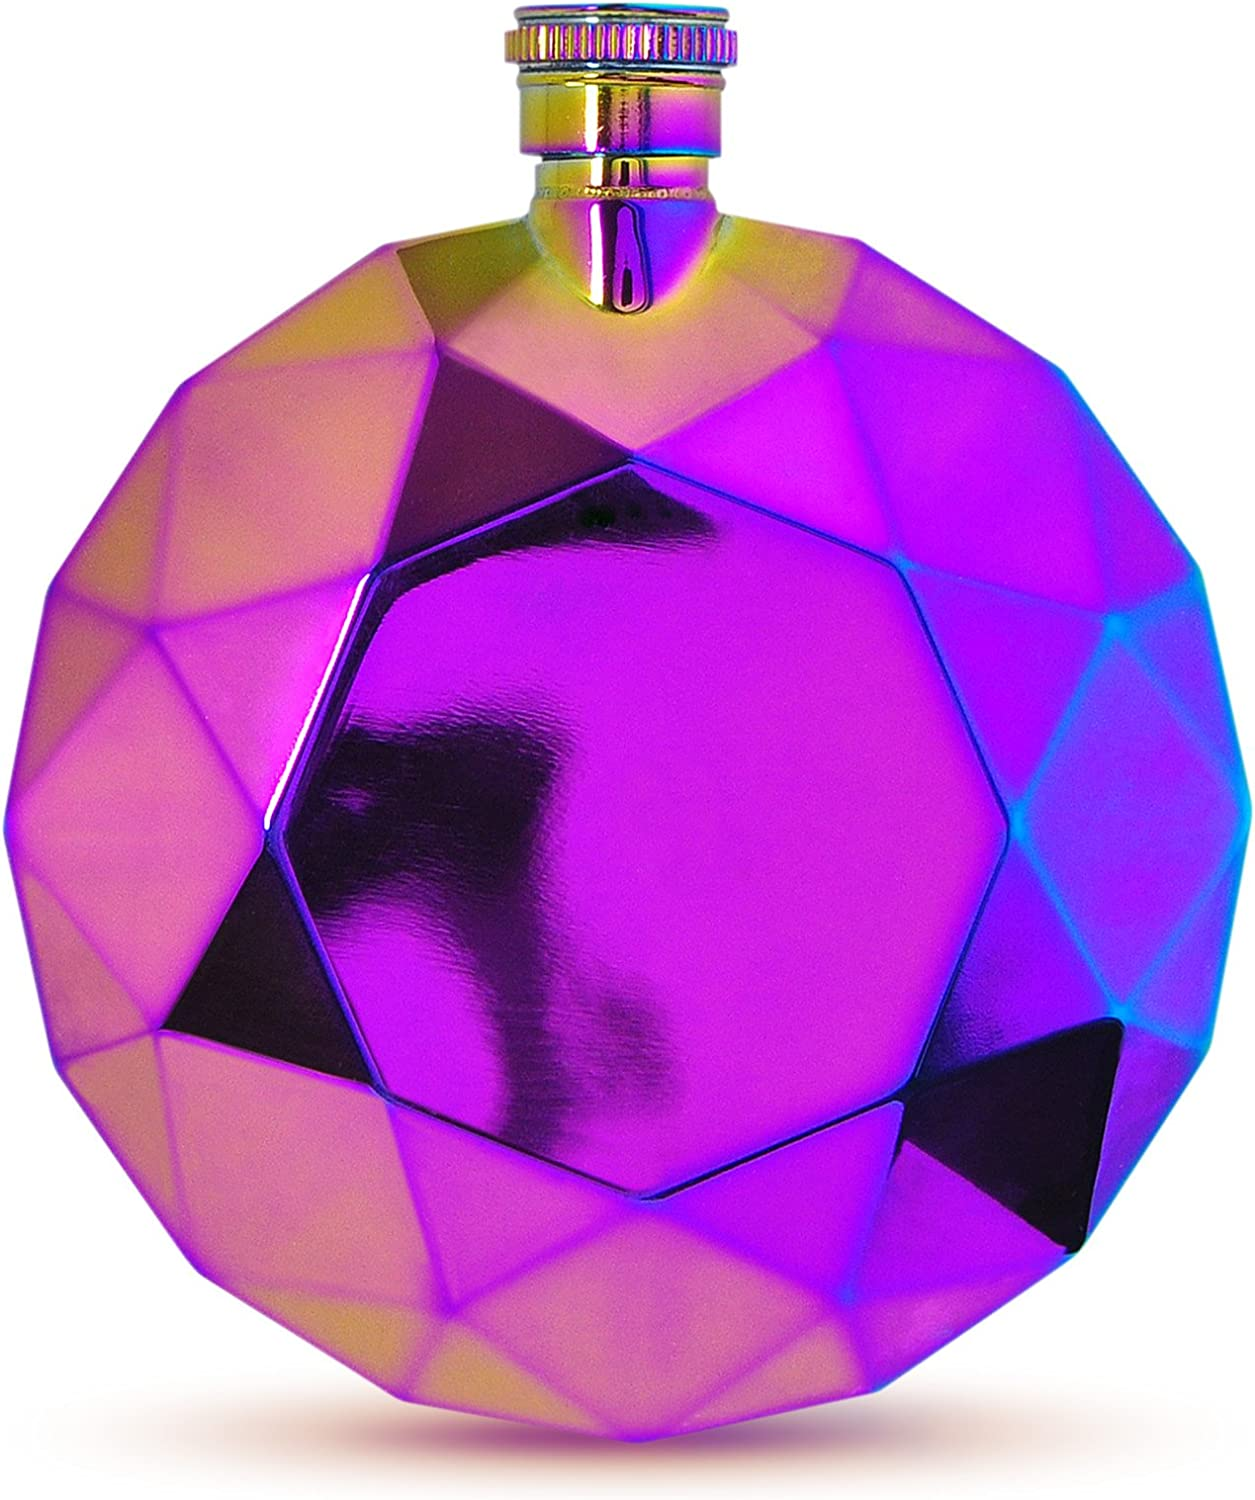 Fancy That Faceted Gem Style Pocket-Sized Liquor Flask, 6-Ounce, Rainbow